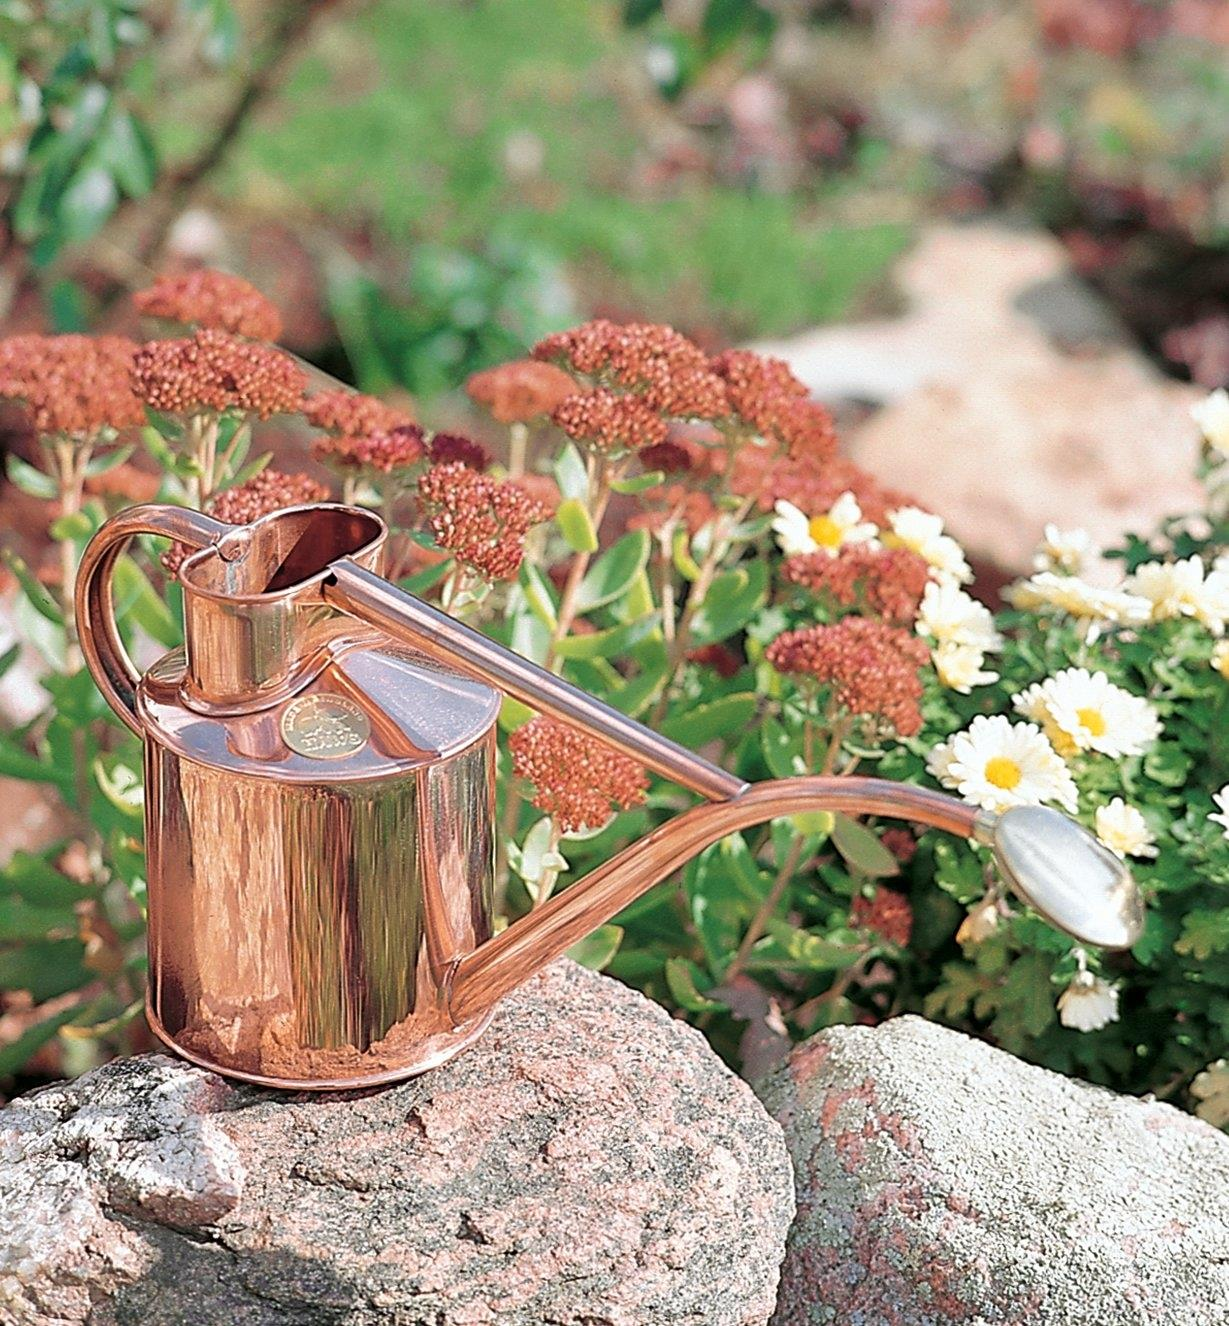 Haws Copper Watering Can sitting on a rock in a flower garden